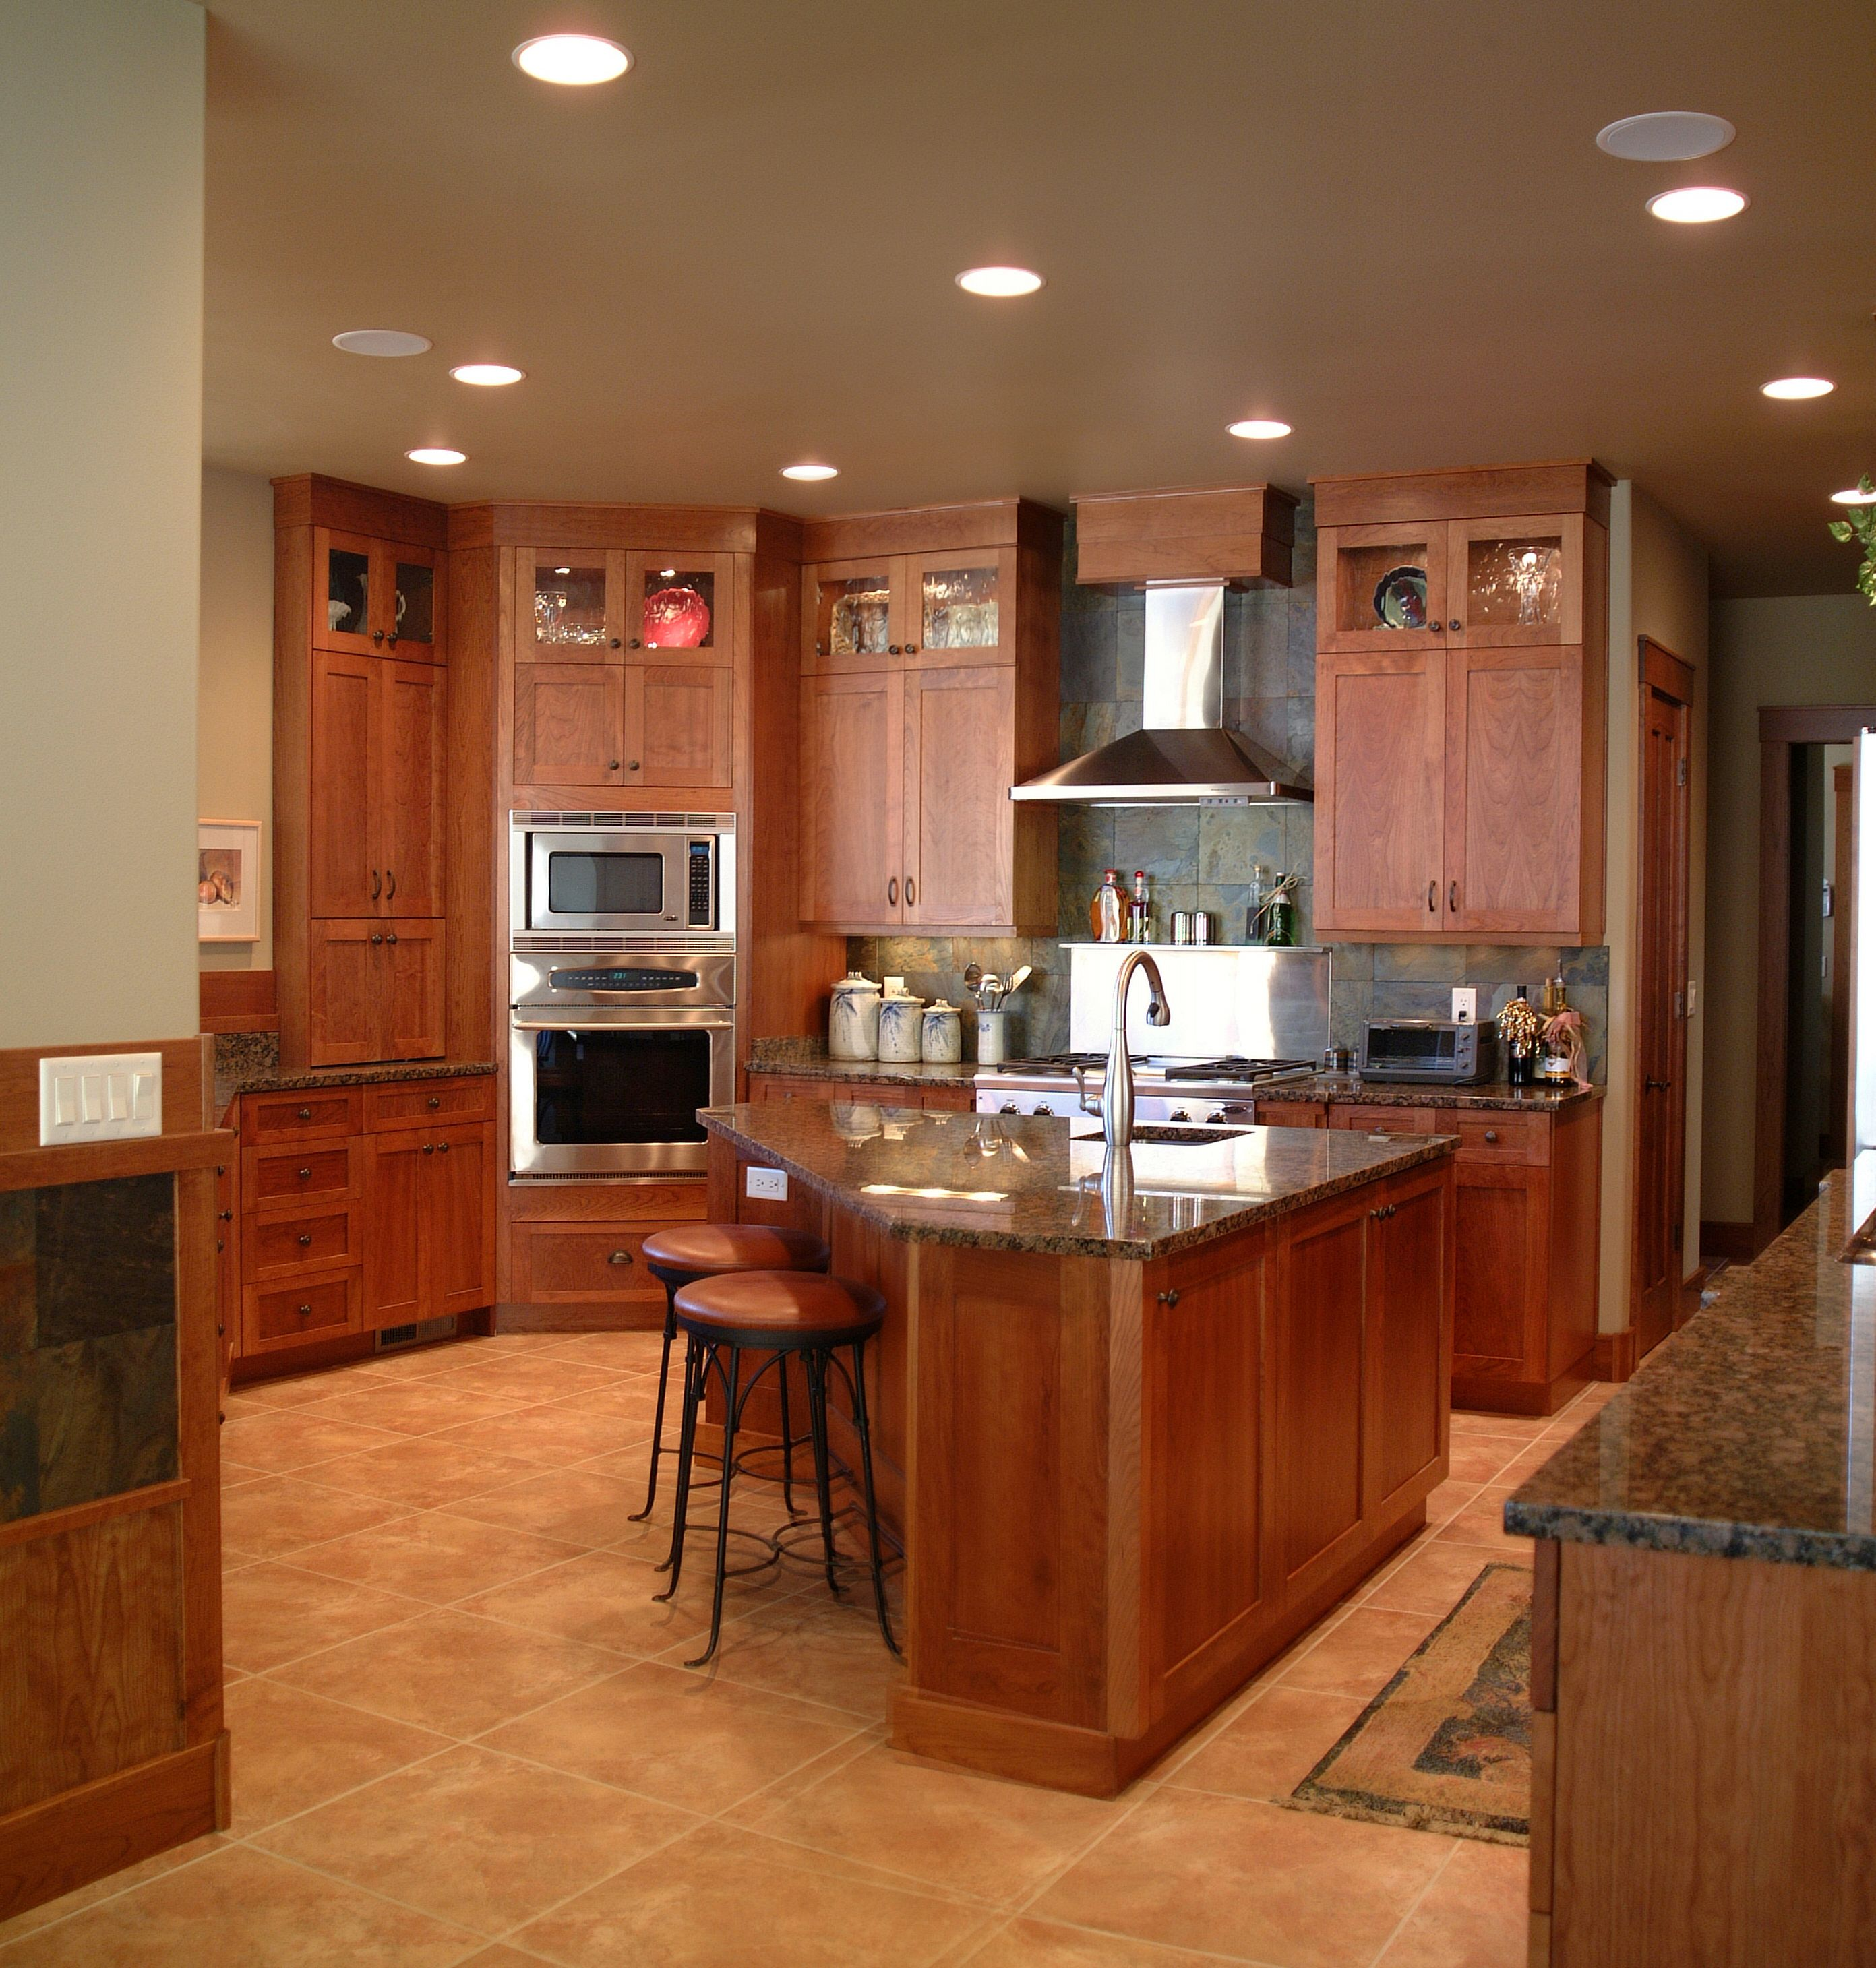 Kitchen Triangle With Island warm, inviting kitchen with high display cabinets, triangle shaped